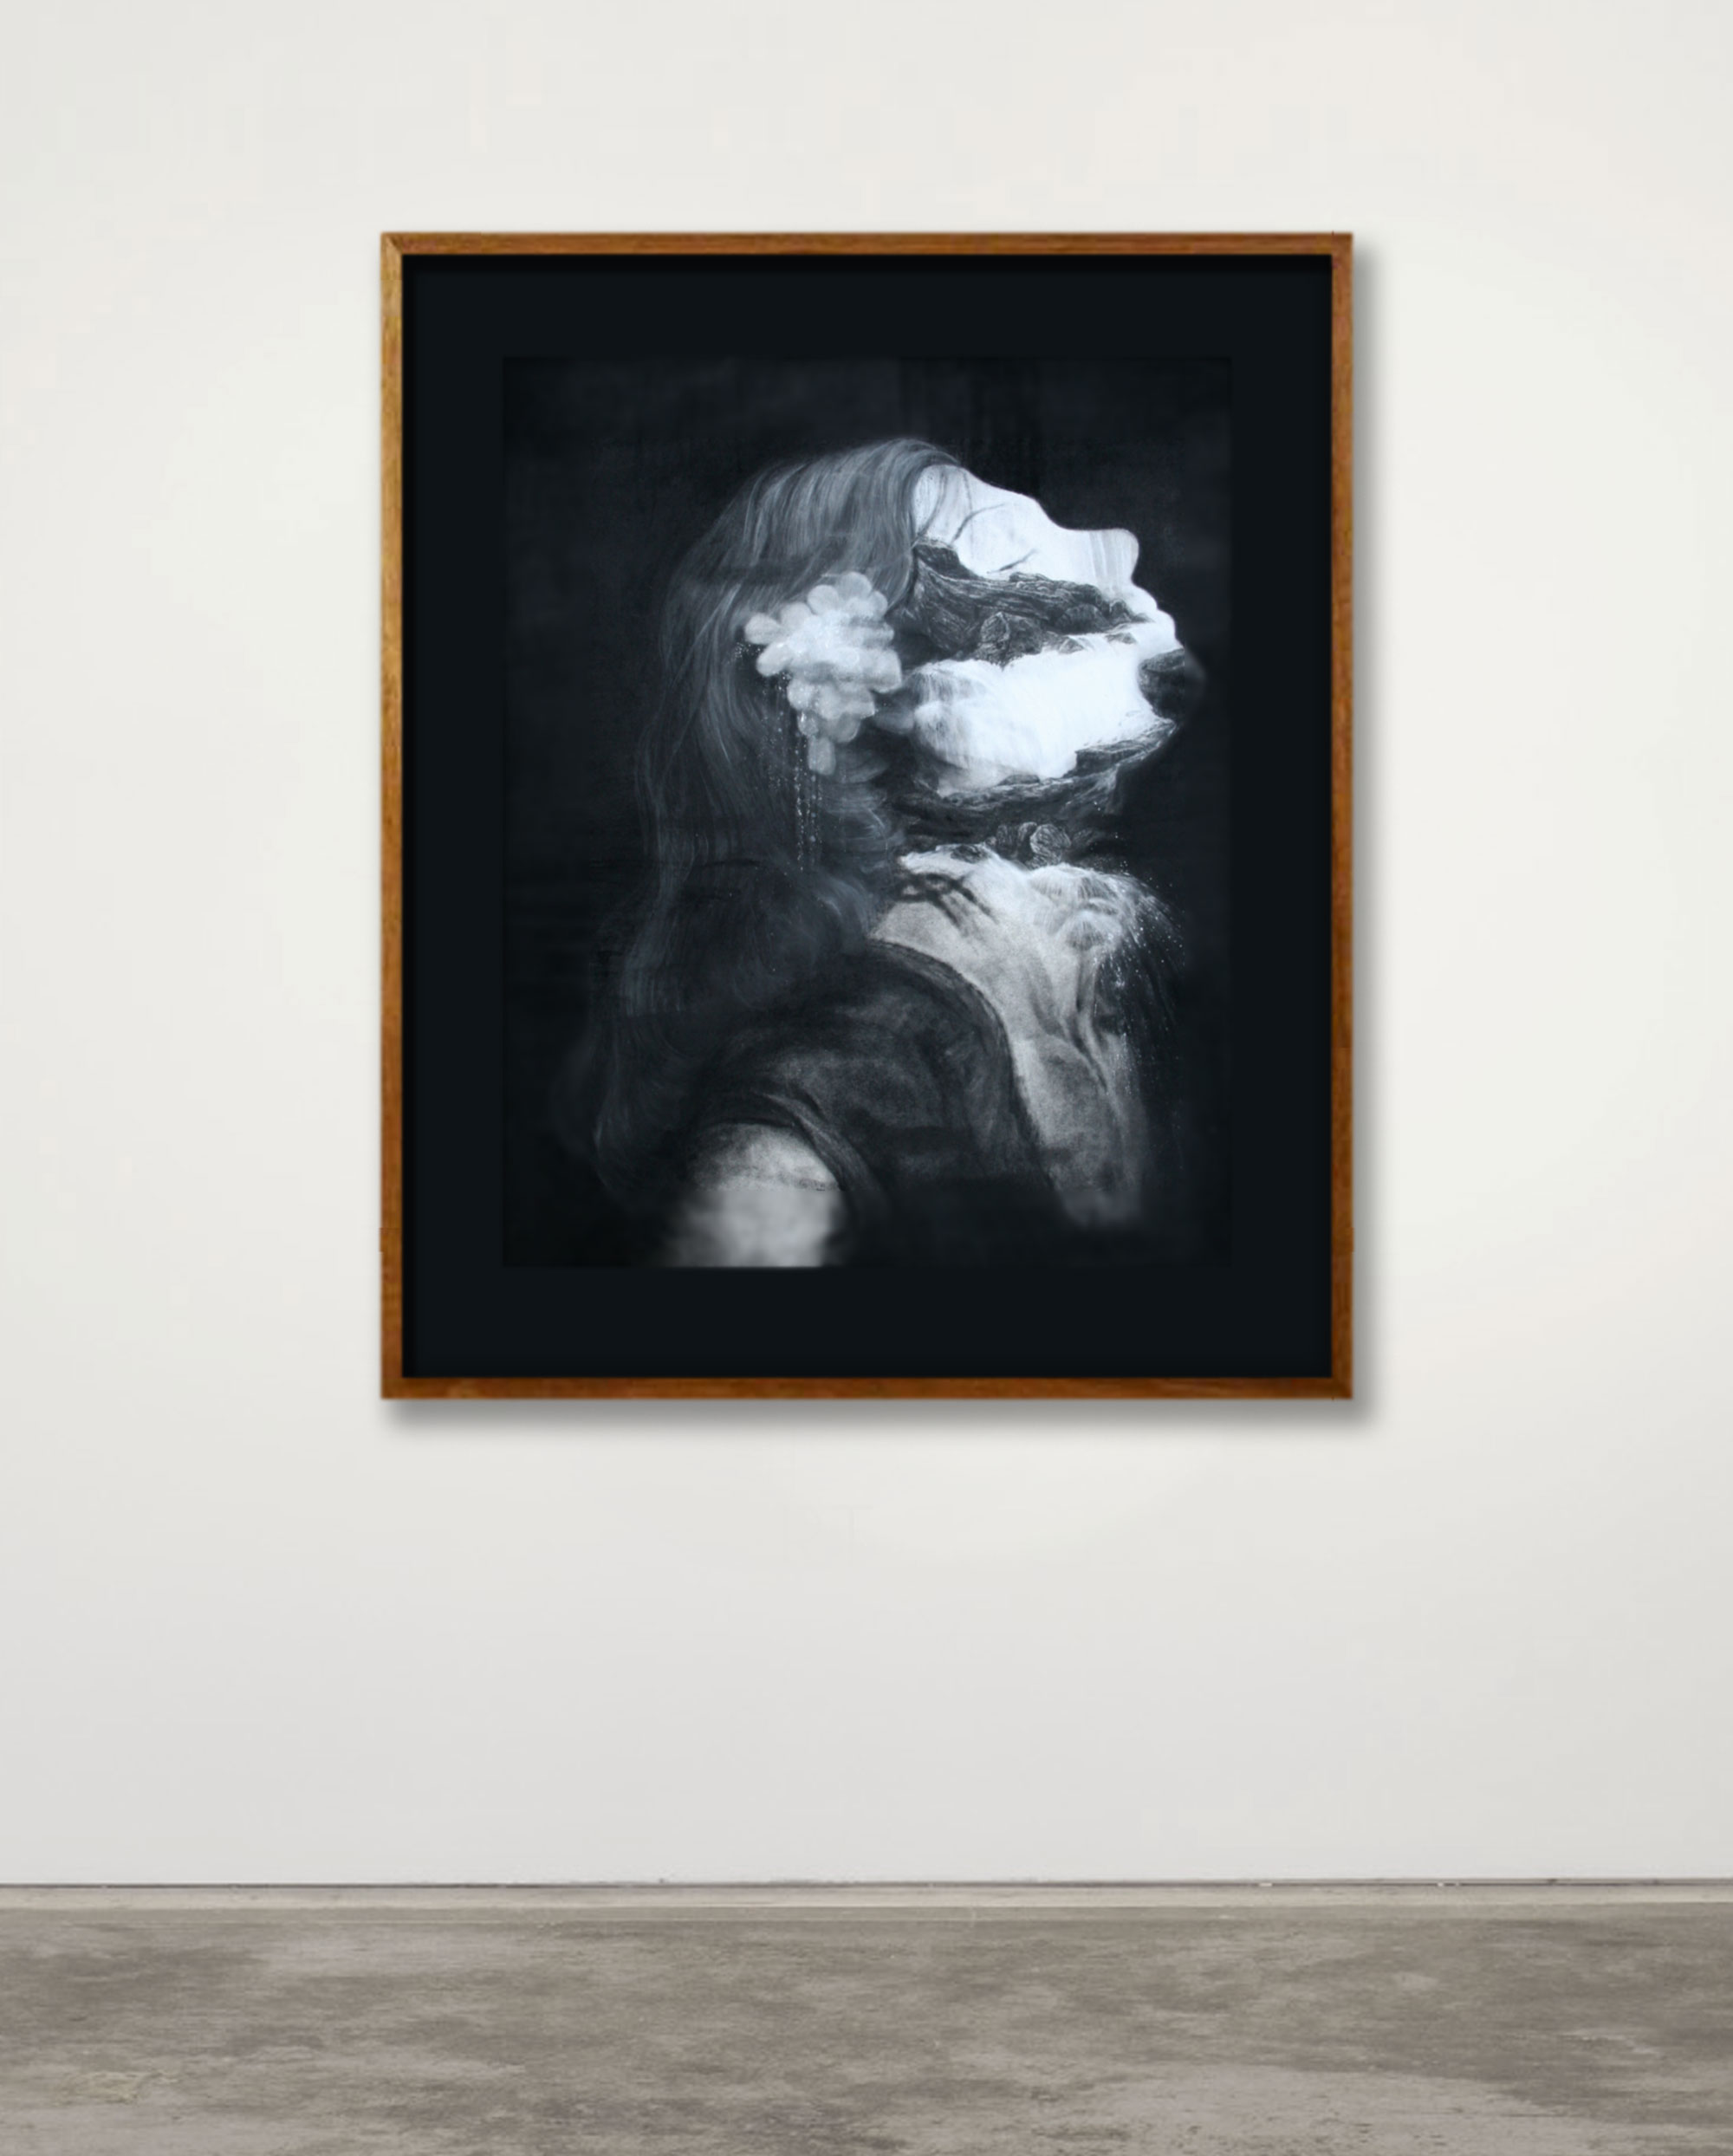 Installation View 'Lay of the Land' - charcoal, pastel, chalk, carbon on paper 64 x 81cm, 2013